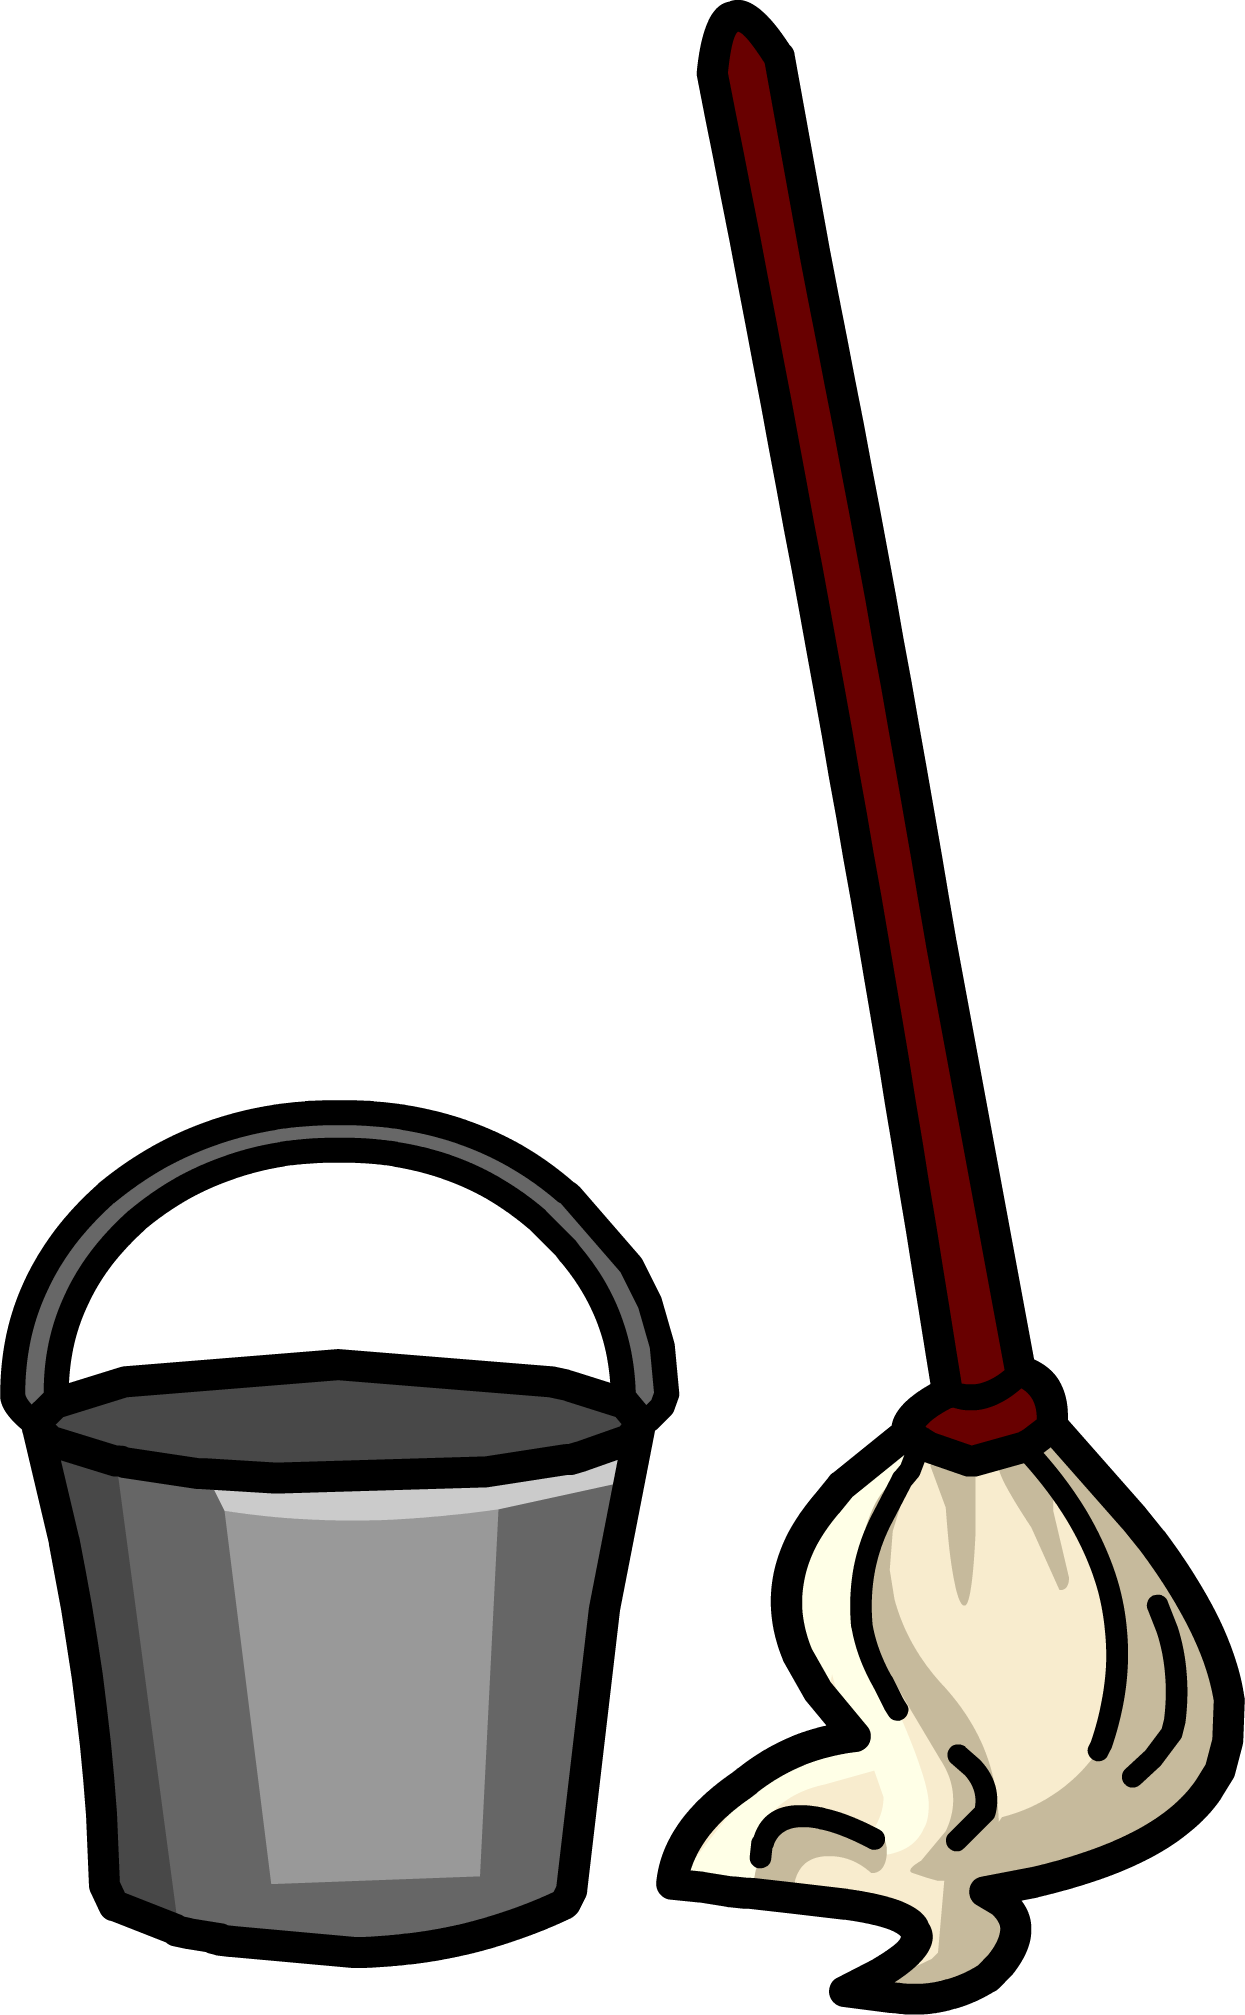 red clipart mop #140632926